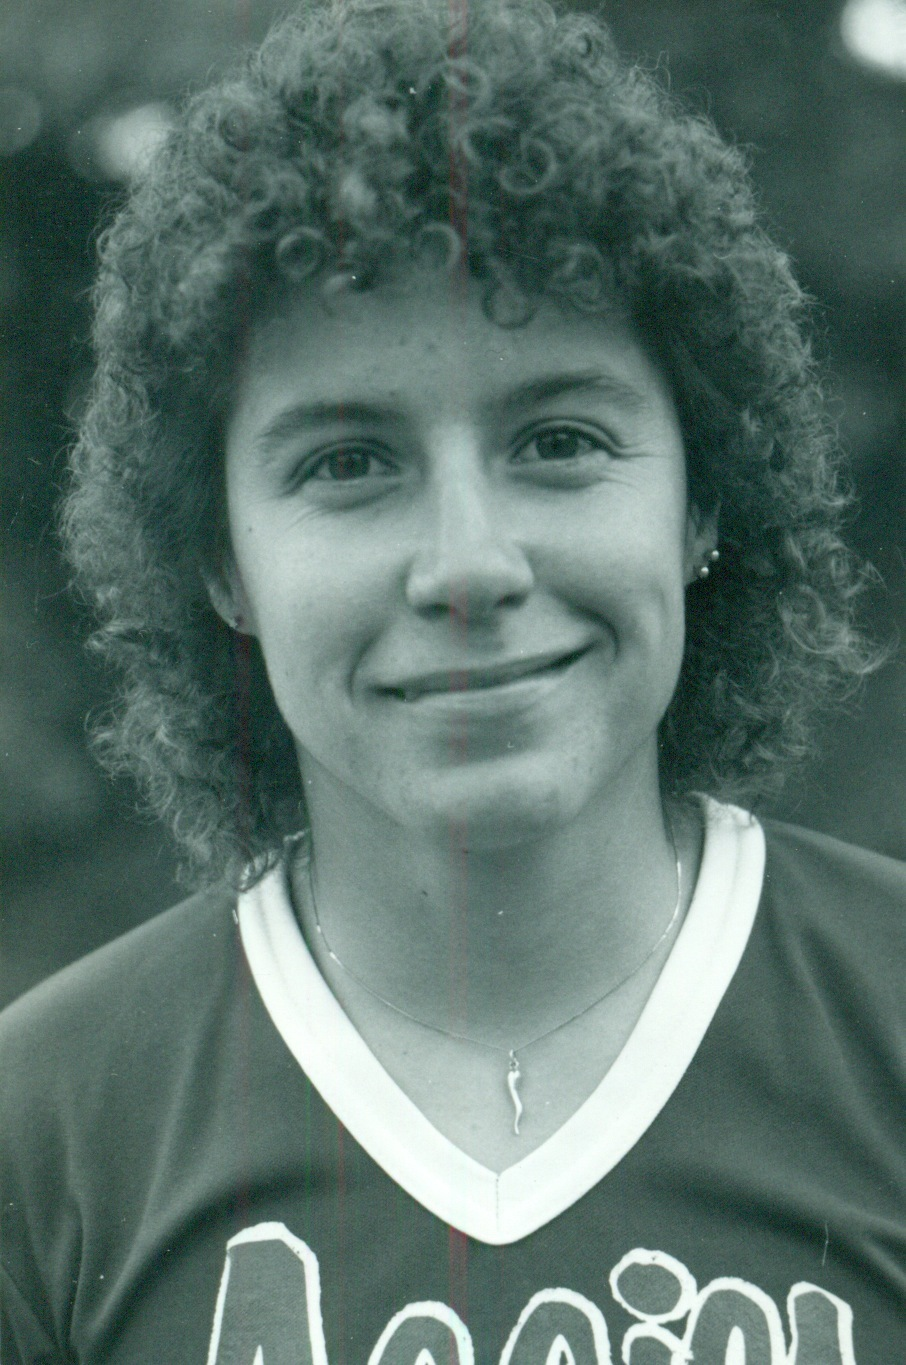 Yolanda Arvizu, a four-year starter at second base and pitcher for Utah State from 1979-82, earned All-American recognition in 1981 and 1982 and is one of just two softball players in school history to earn multiple All-America honors.